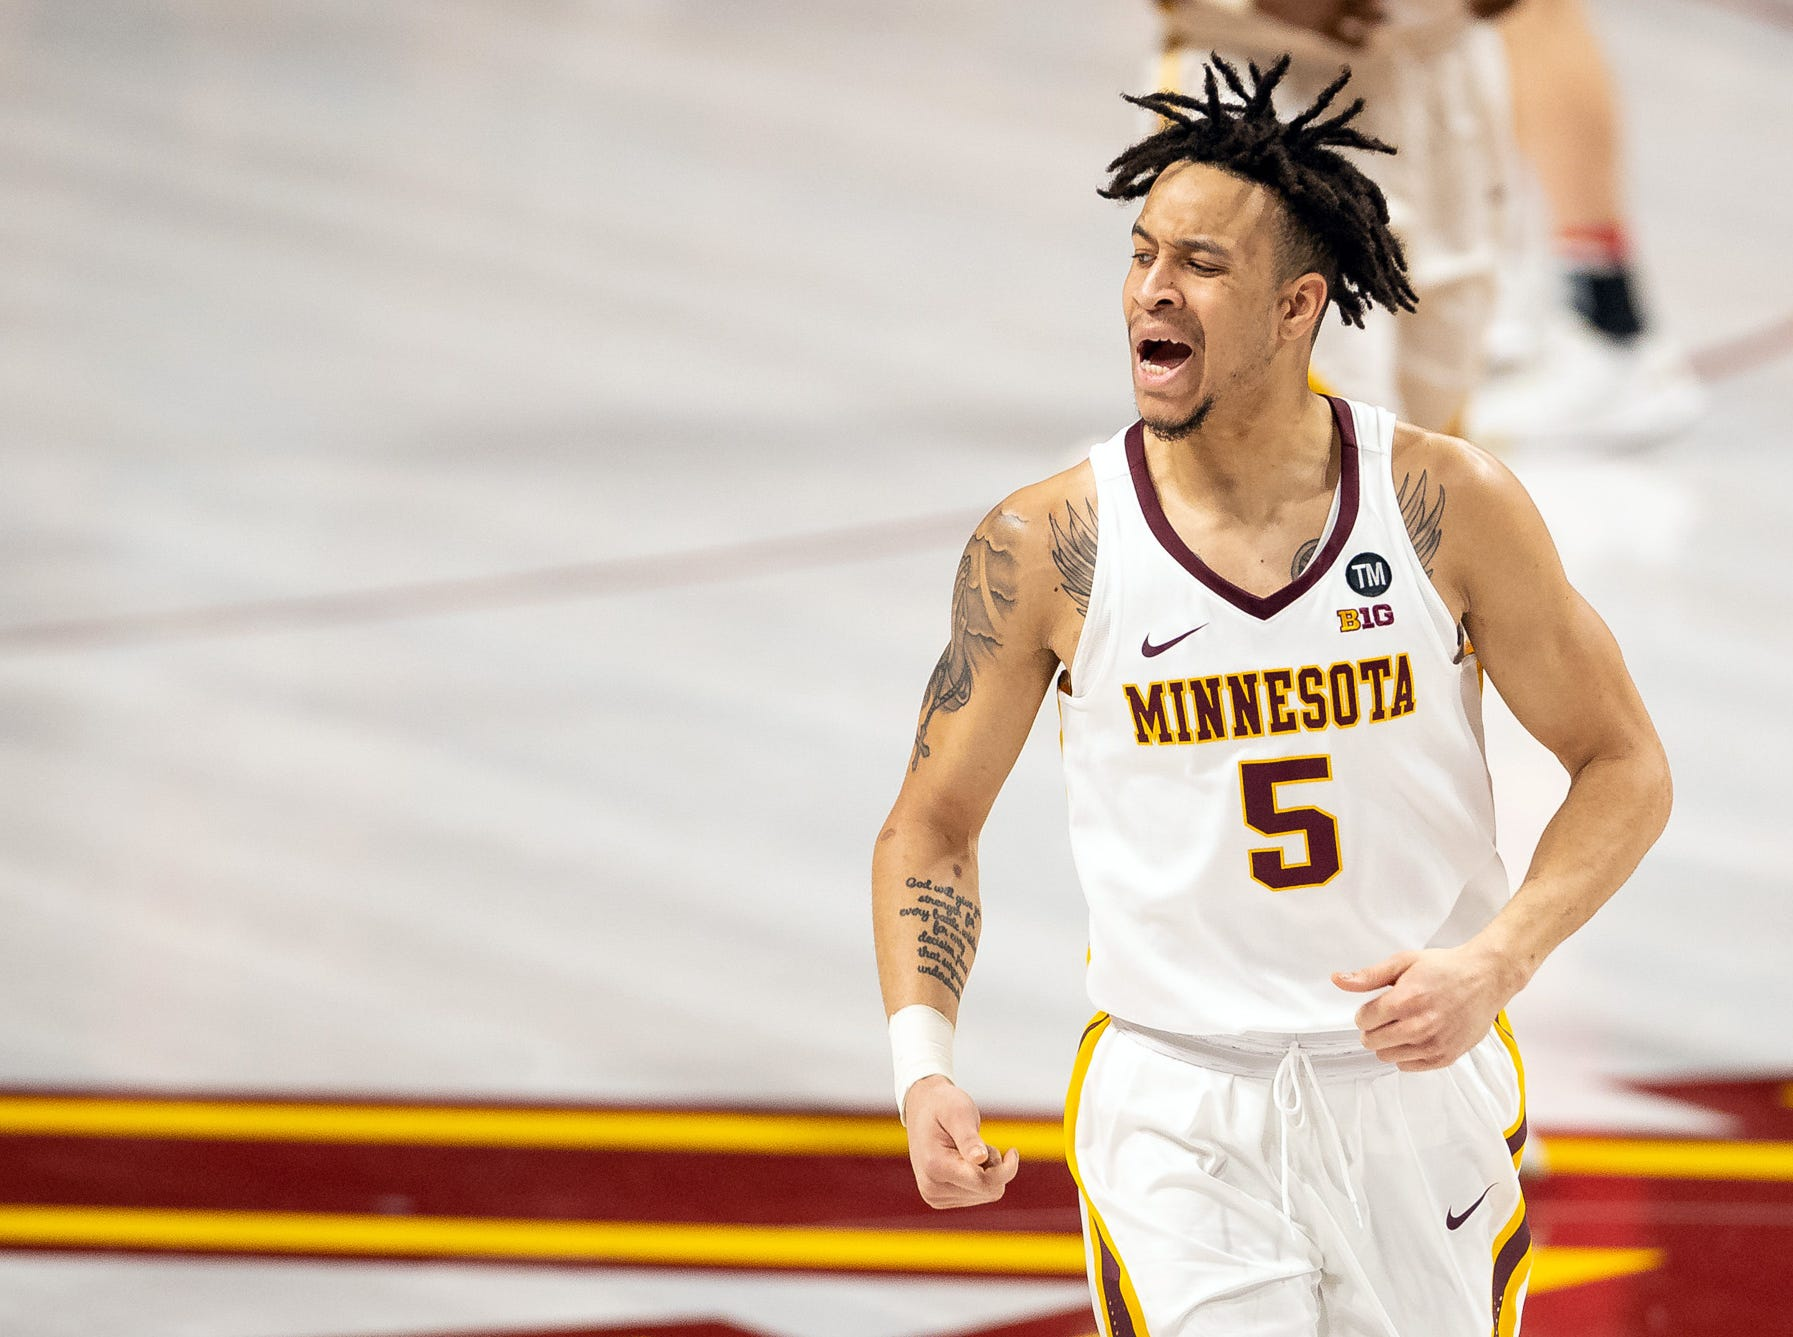 Minnesota (21-13), No. 10 seed in East, at-large bid out of Big Ten Conference.